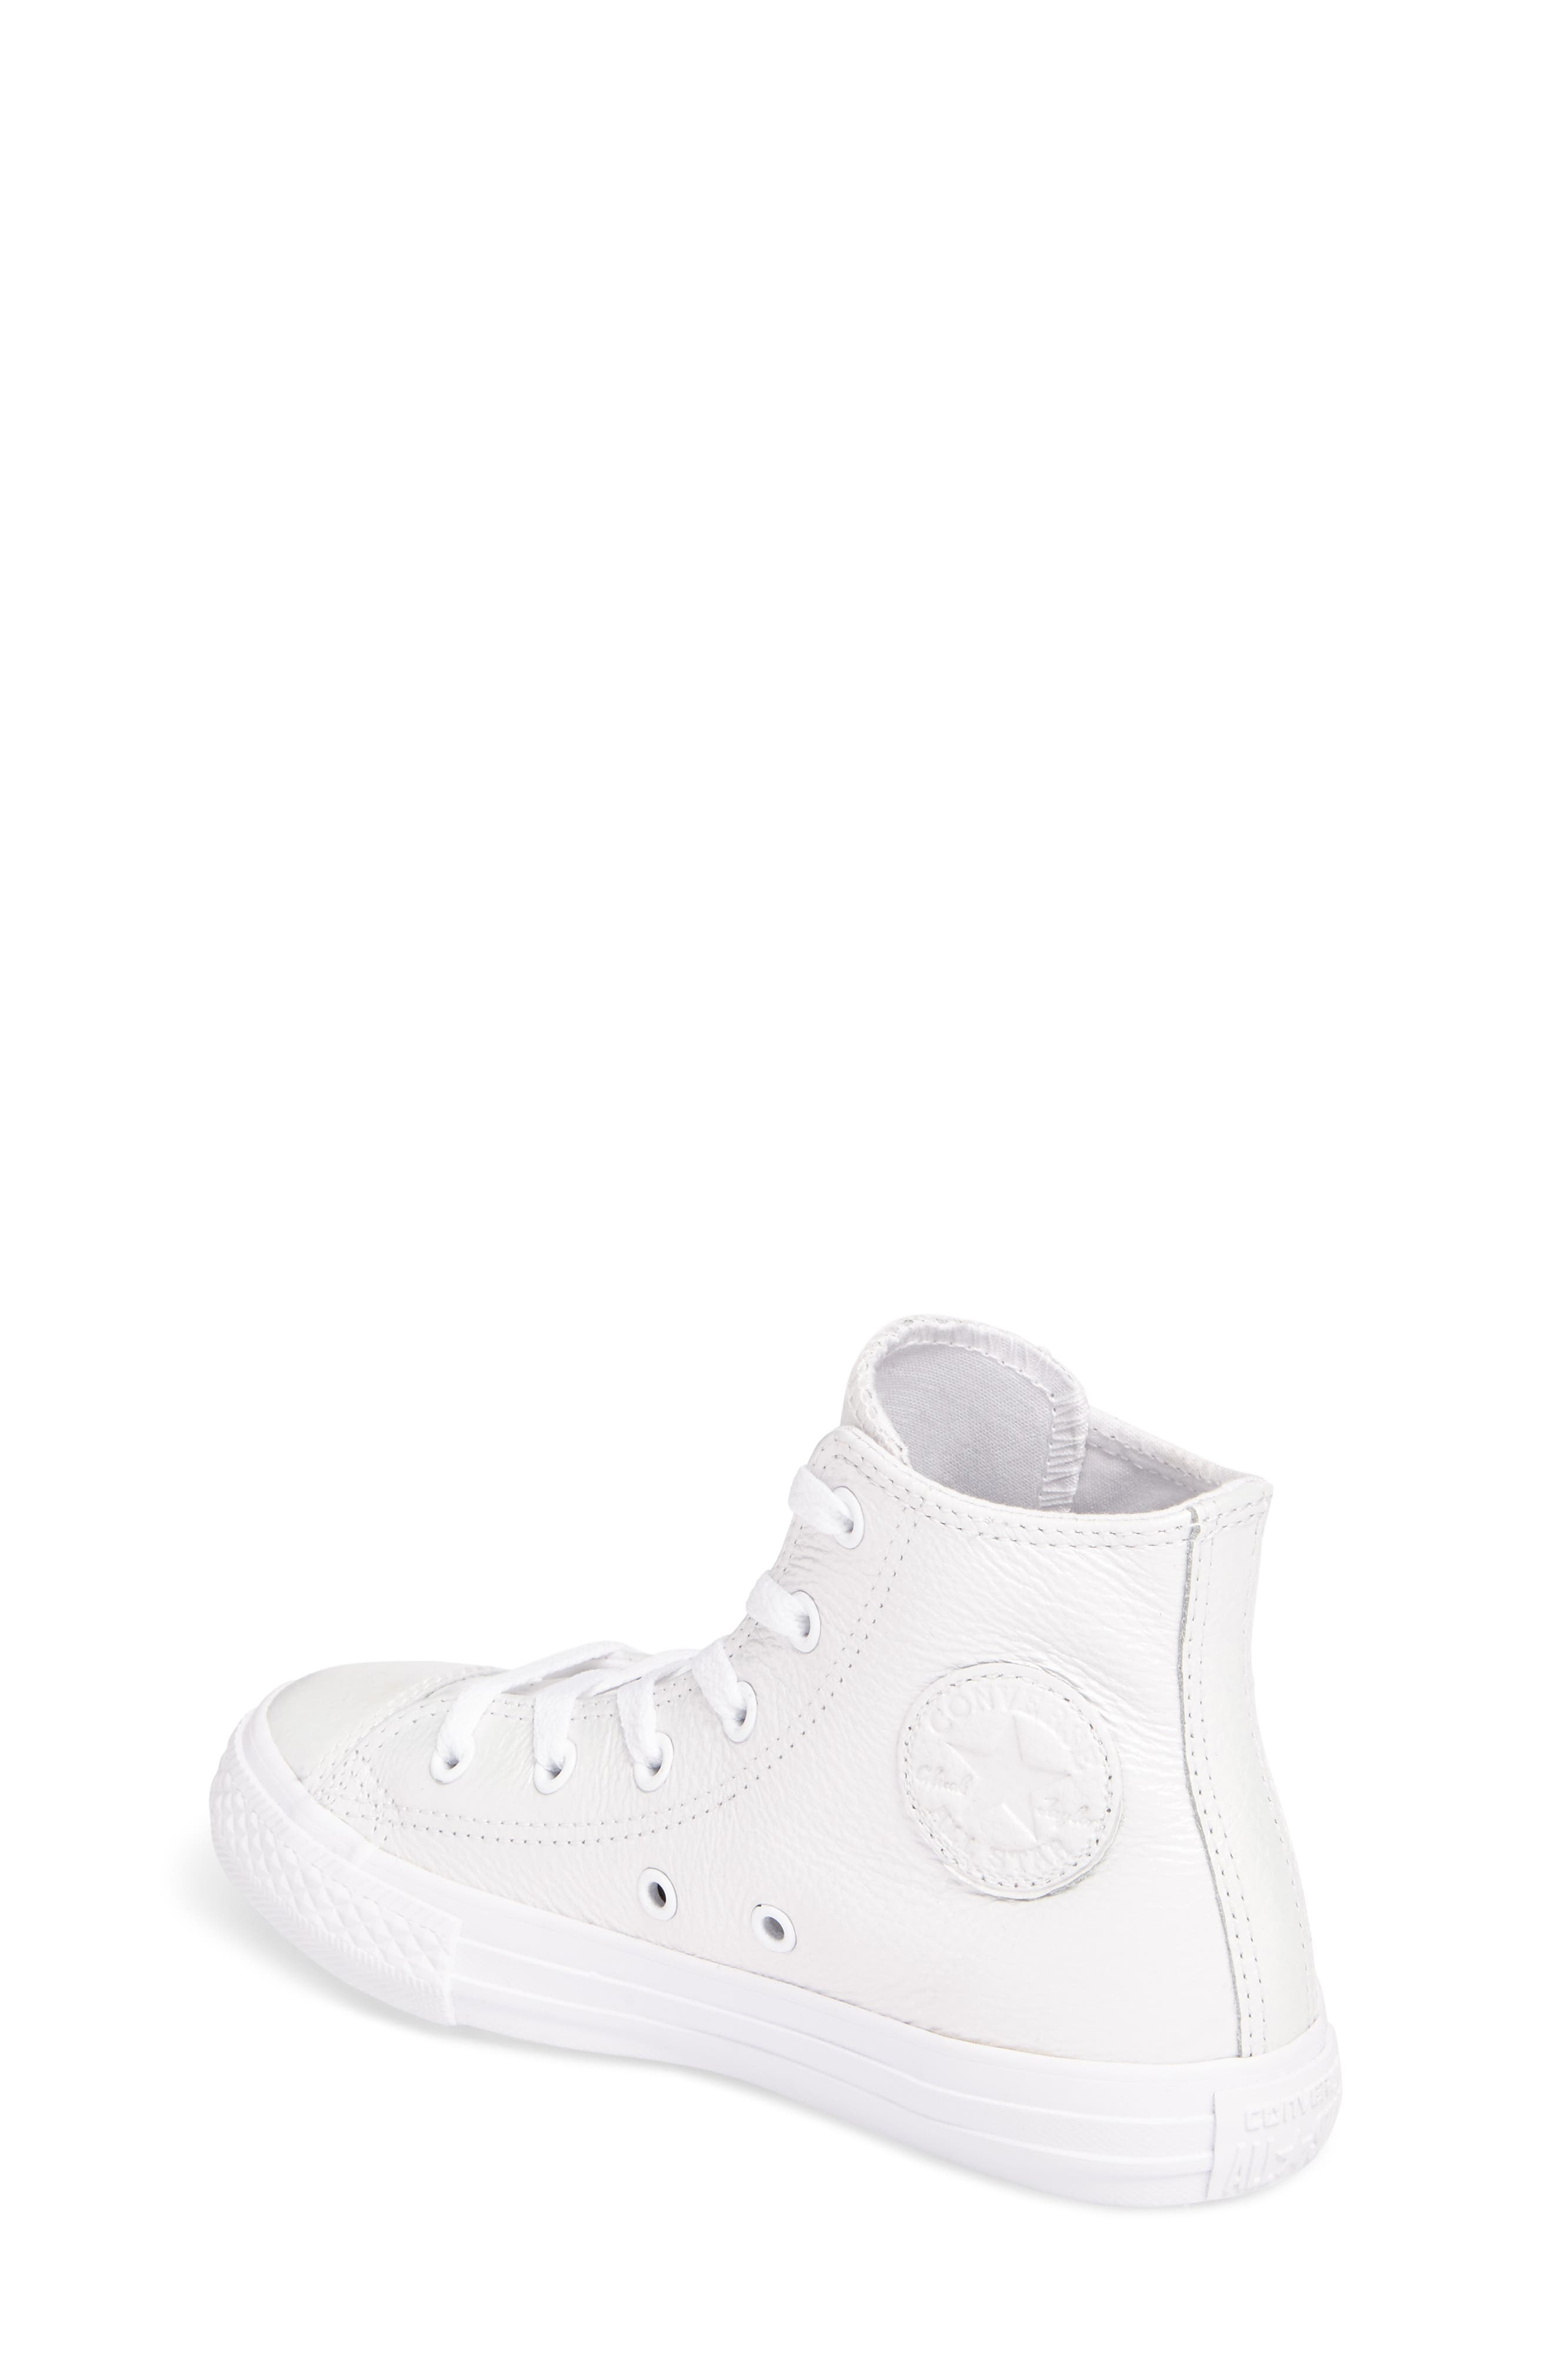 Chuck Taylor<sup>®</sup> All Star<sup>®</sup> Iridescent Leather High Top Sneaker,                             Alternate thumbnail 2, color,                             White Leather